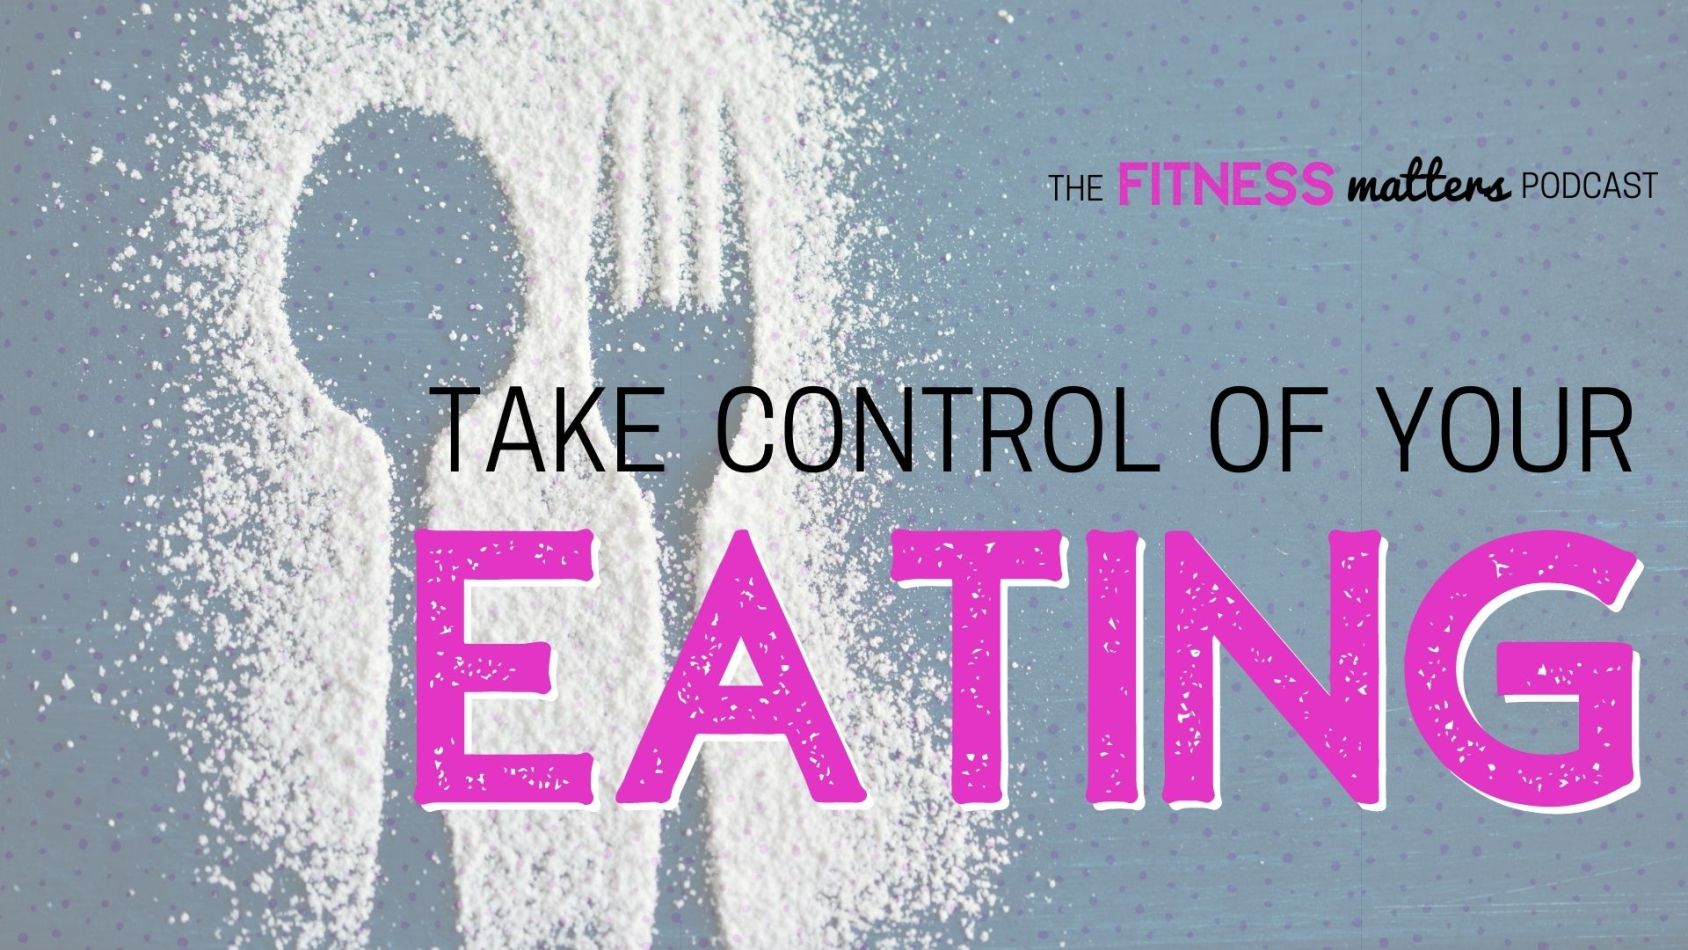 Ep. 074: Take Control of Your EATING ???? The Fitness Matters Podcast with Pahla B